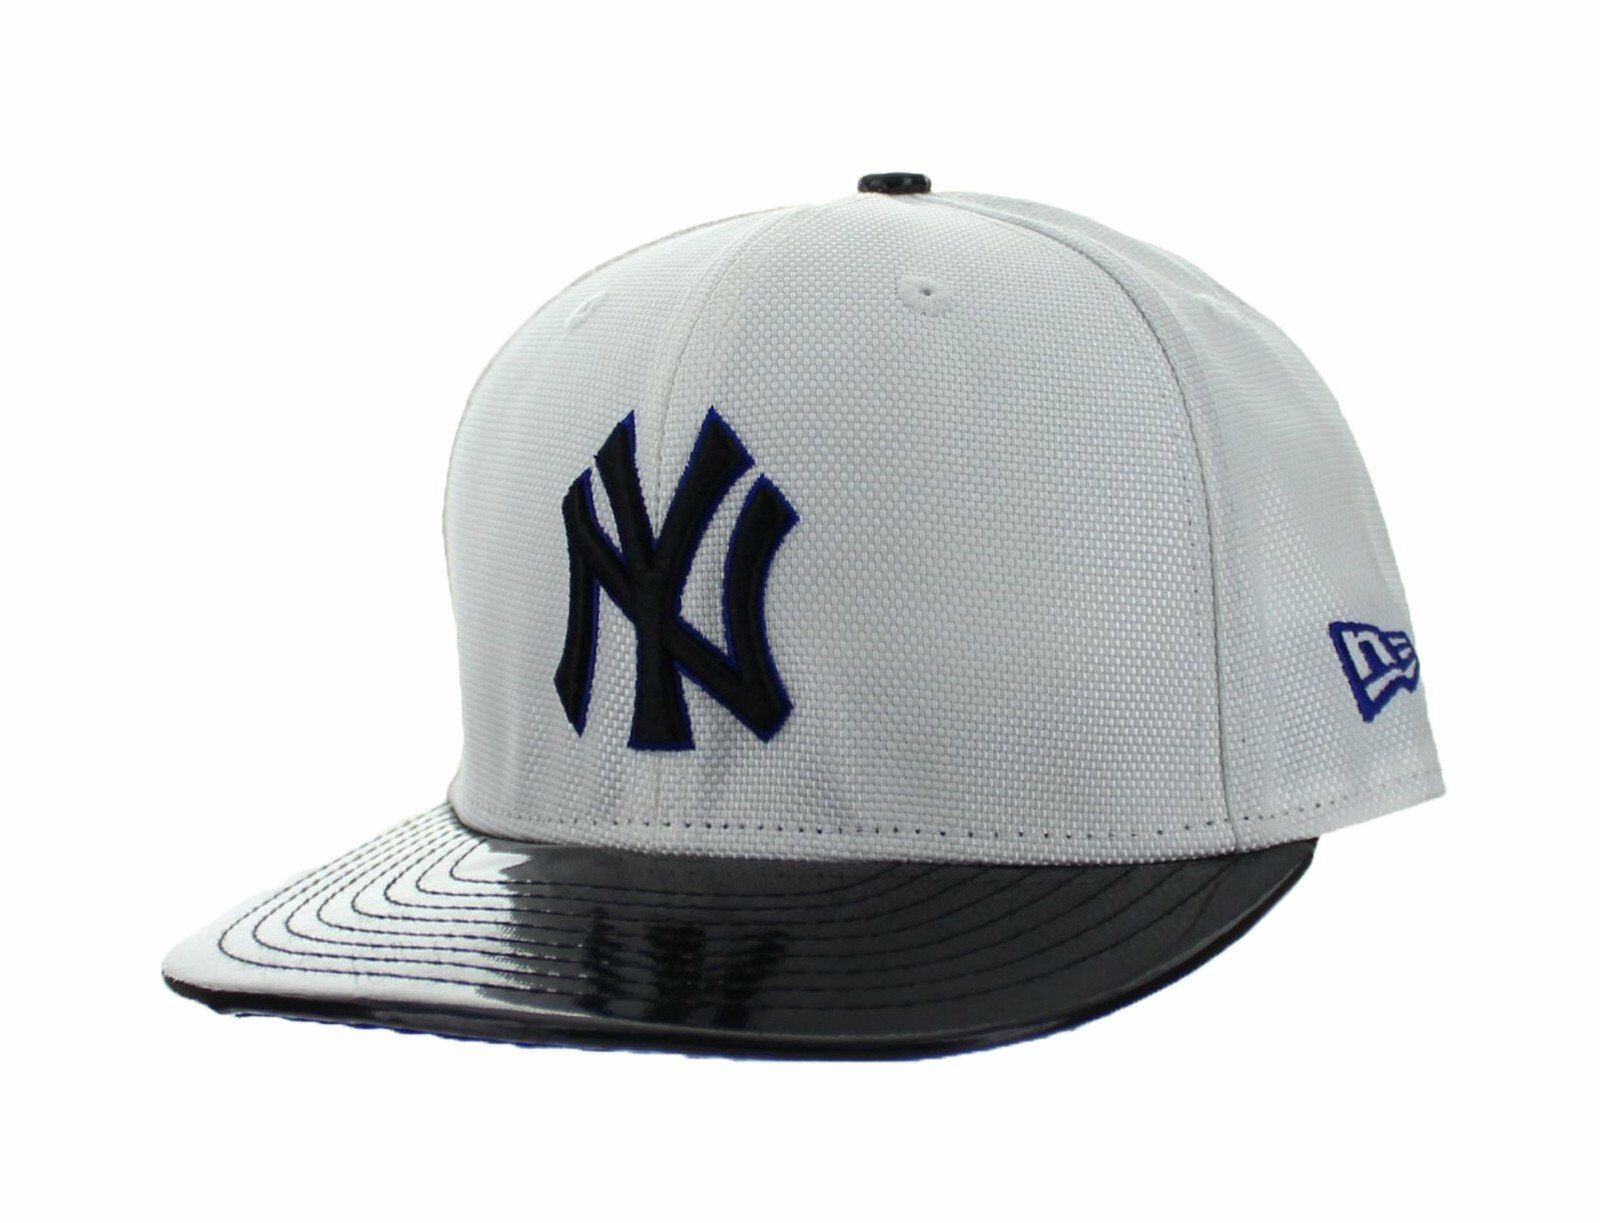 Mens New Era 59FIFTY New York Yankees Fitted Hat White Blue Black LR180438026